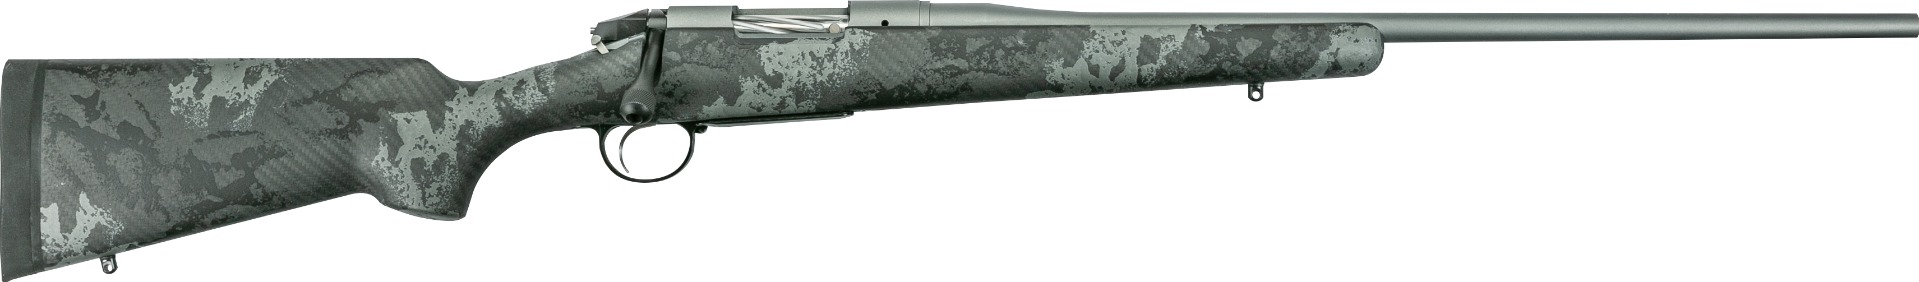 Bergara Mountain 2.0 6.5 Creedmoor